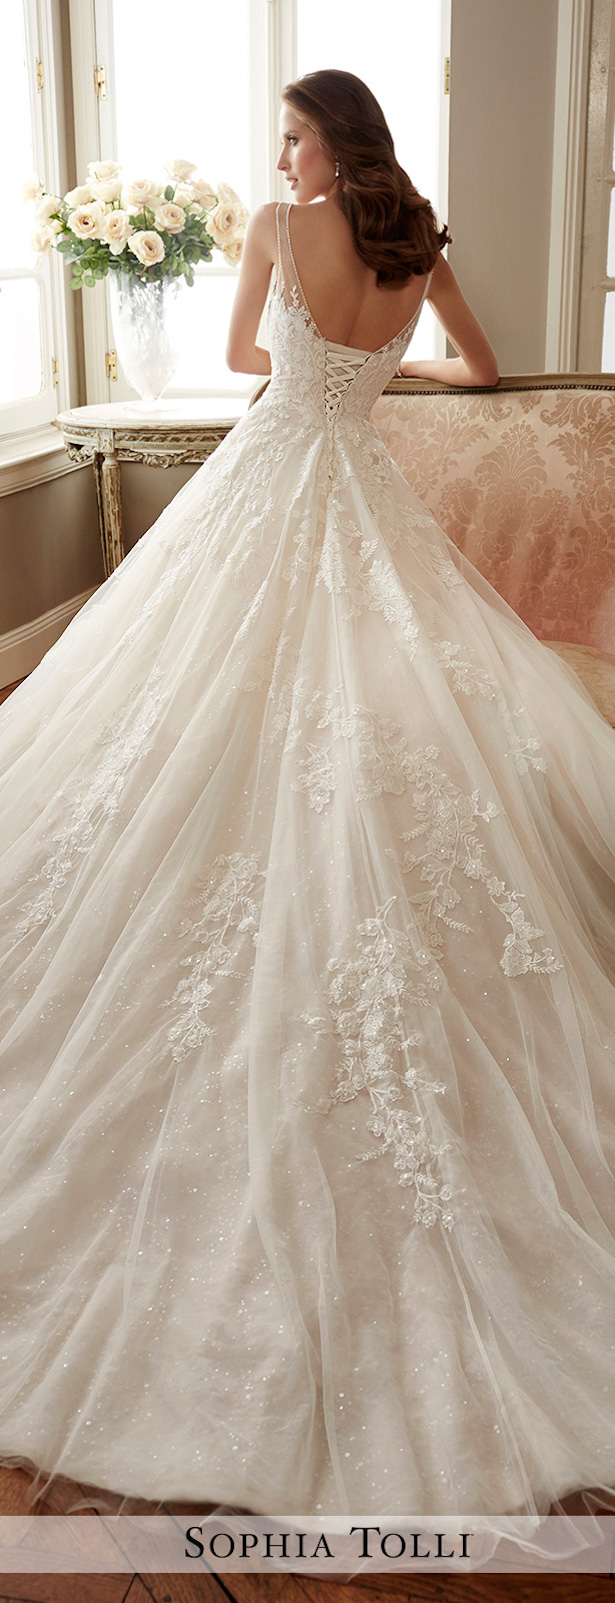 Wedding Dress by Sophia Tolli 2017